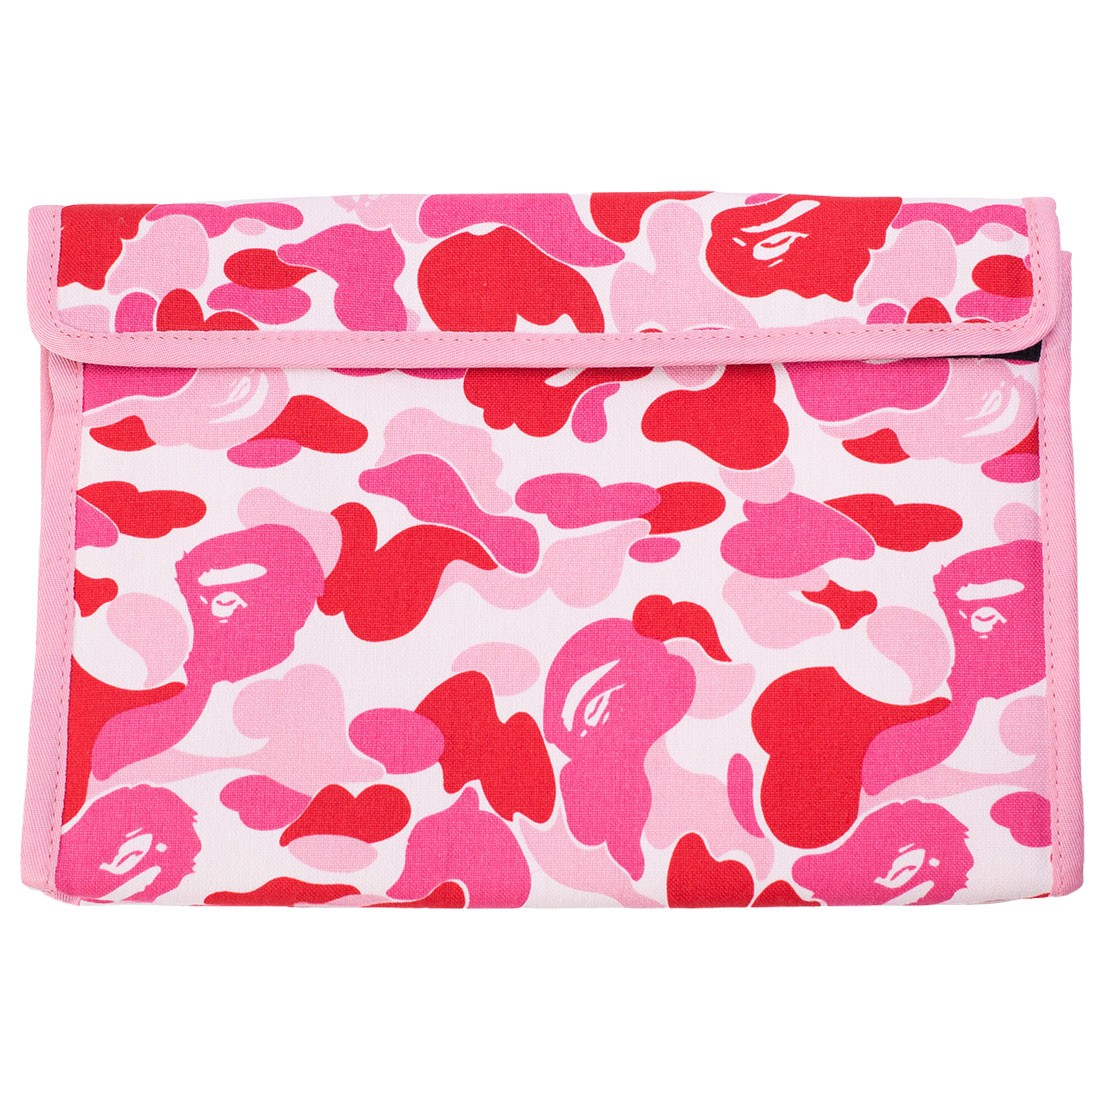 A Bathing Ape ABC Camo Tissue Cover (pink)